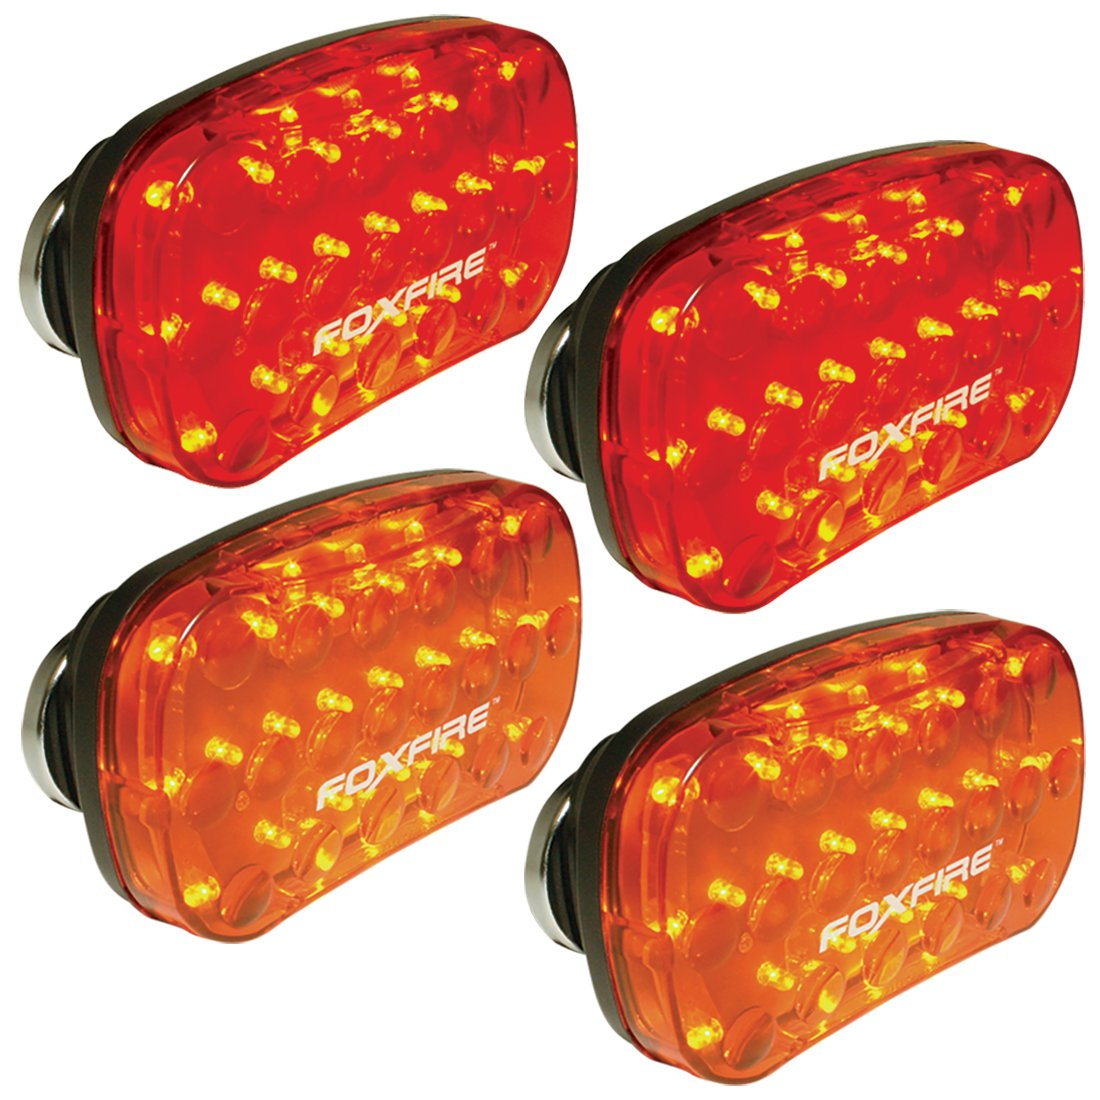 Set of 4 FoxFire LED Lights (2 red, 2 amber)